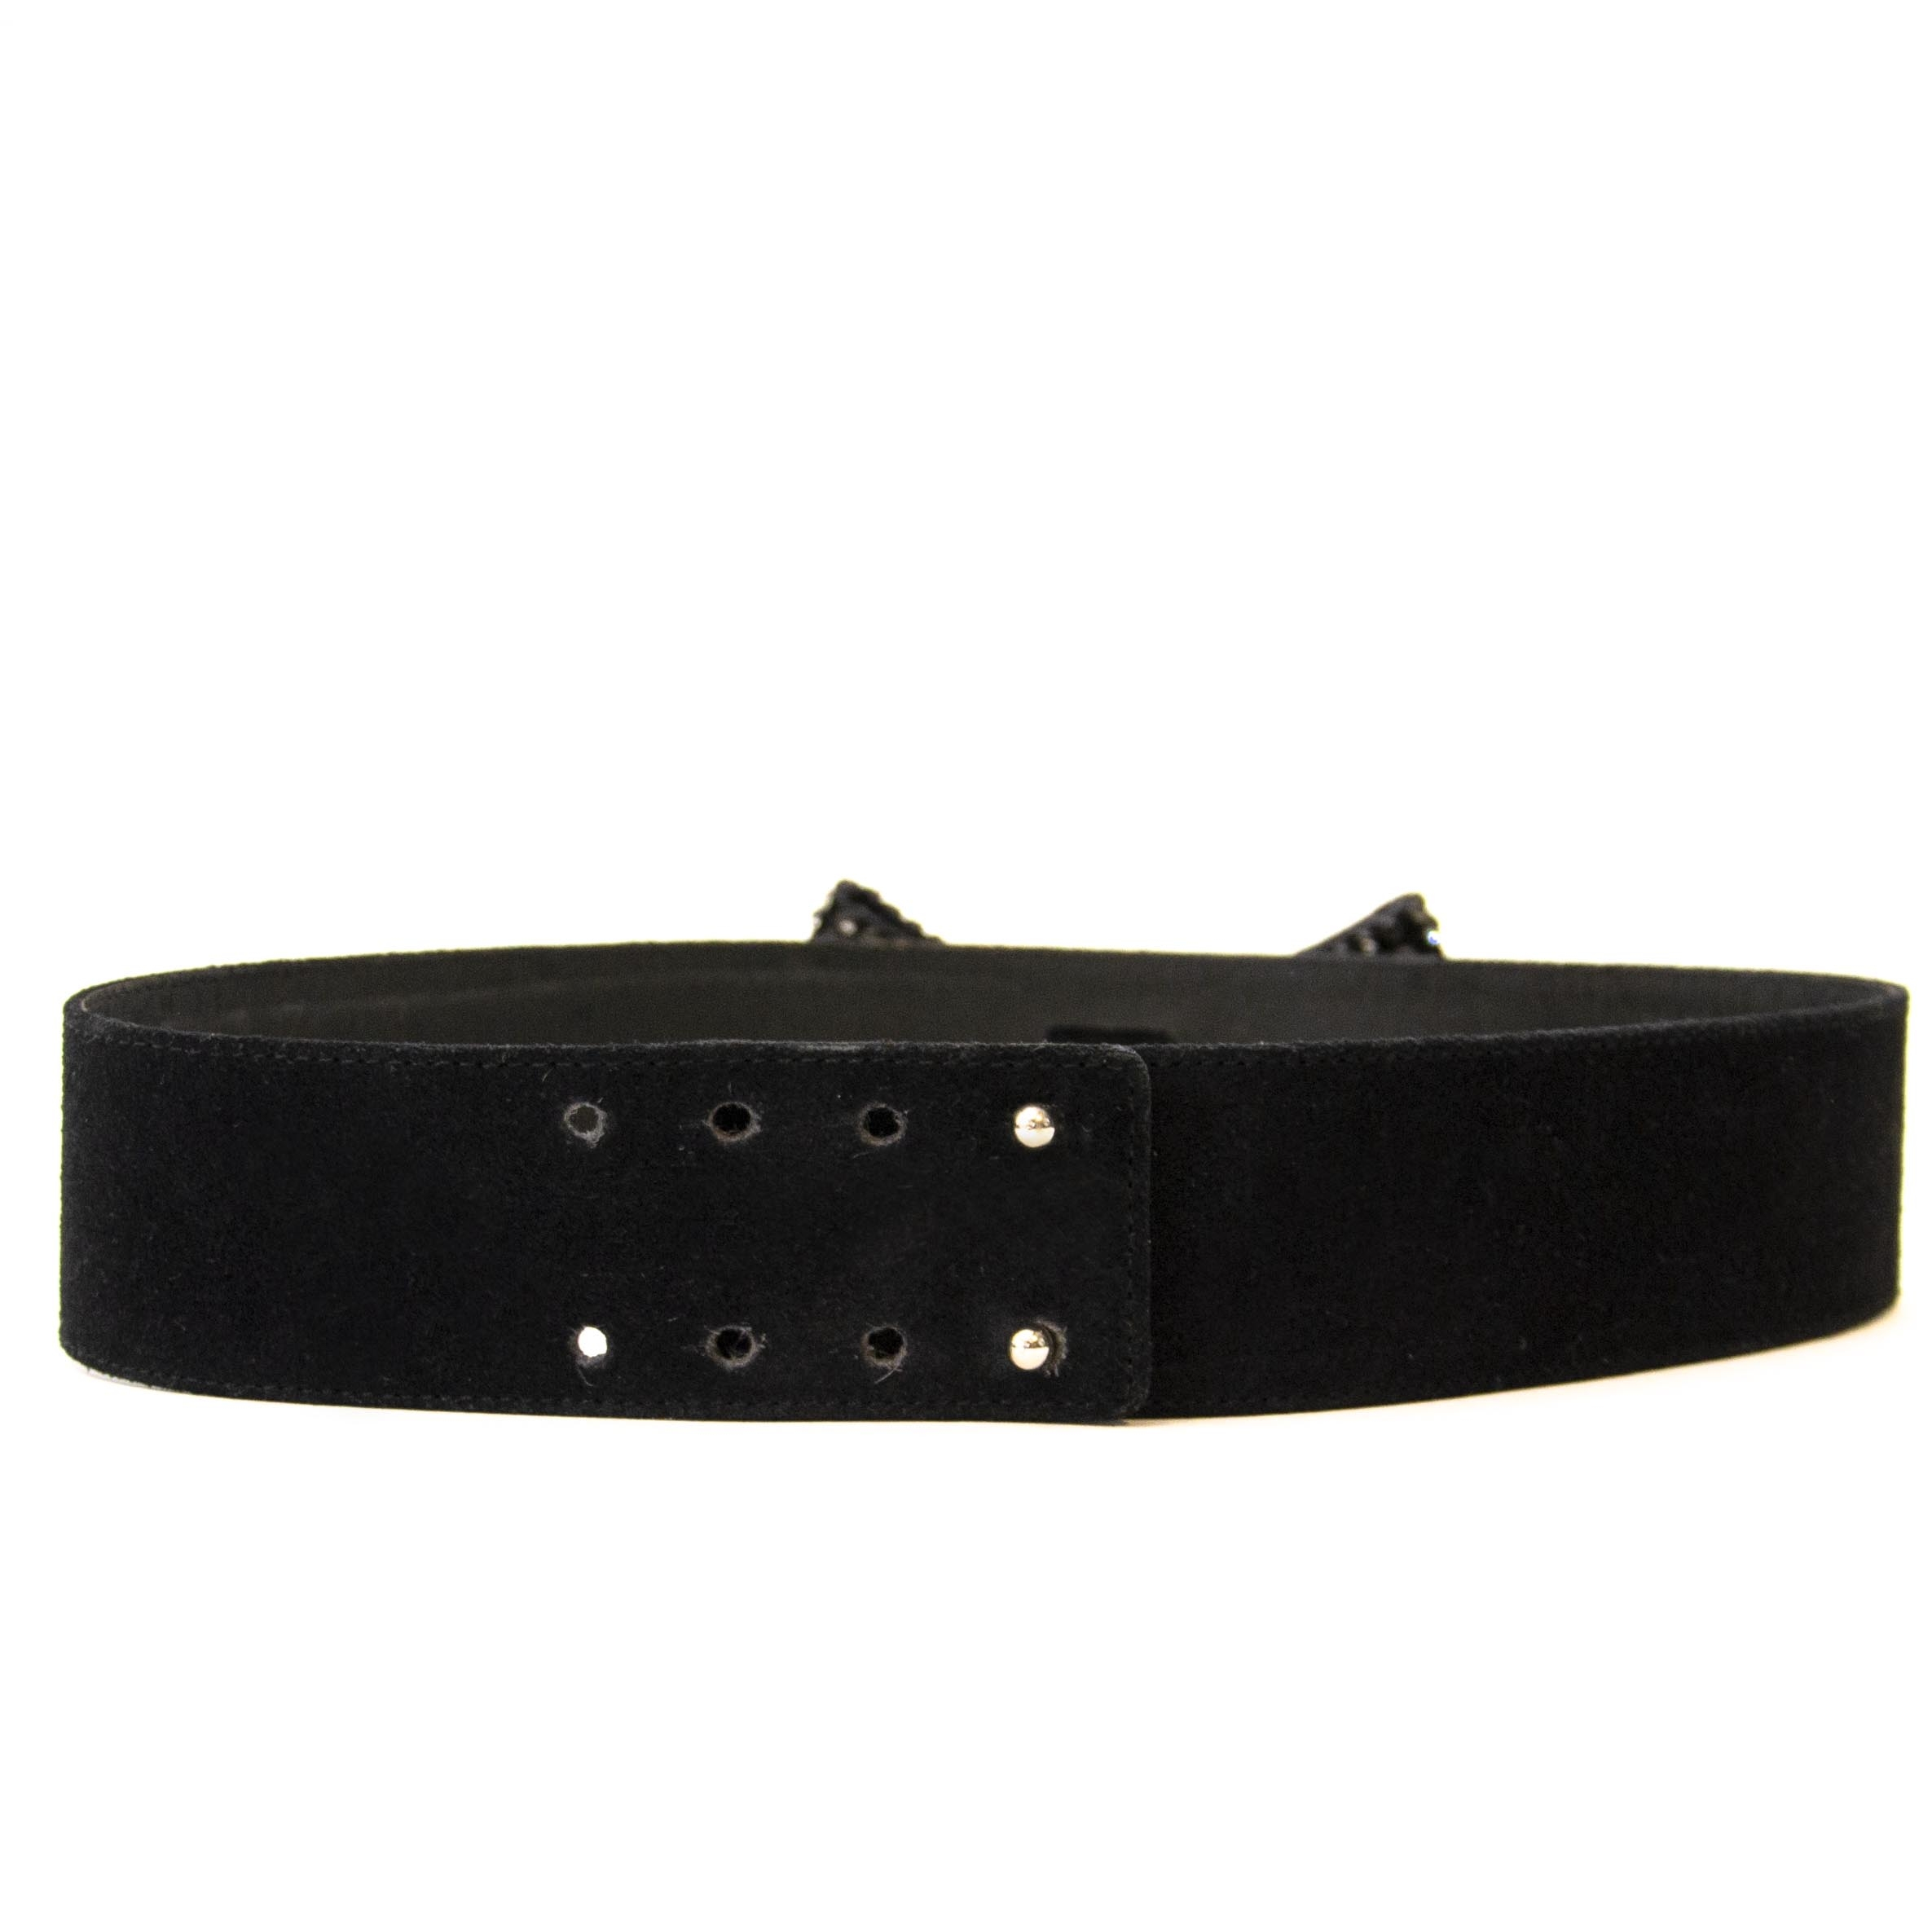 db62e4c4e3c Buy authentic secondhand Delvaux belts Yves Saint Laurent Black Suede Bow  Belt - Size 70. Buy authentic secondhand Delvaux belts